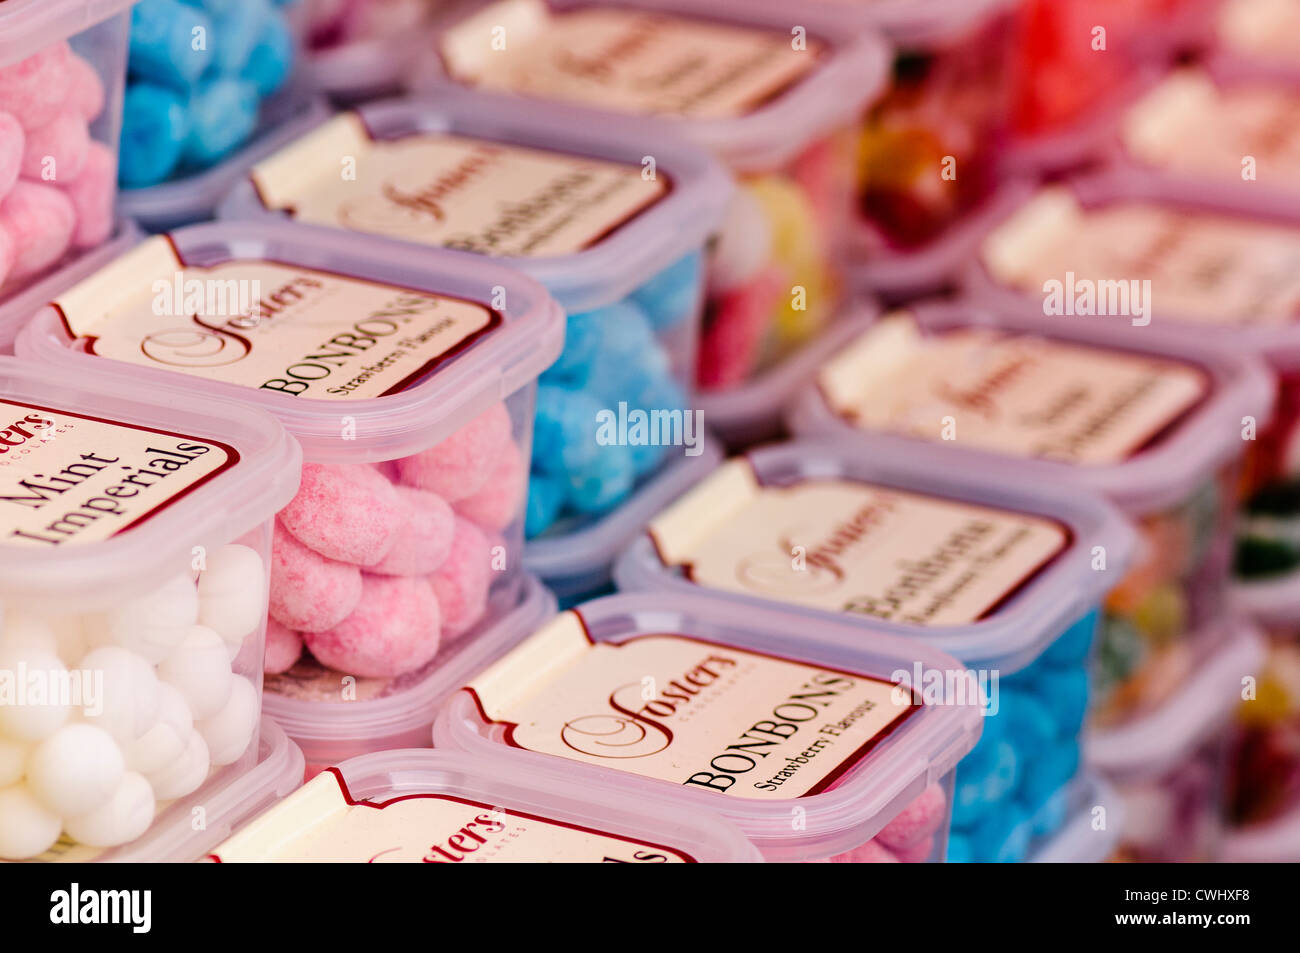 Tubs of Foster's sweets, including bonbons and mint imperials, on sale at a market stall - Stock Image